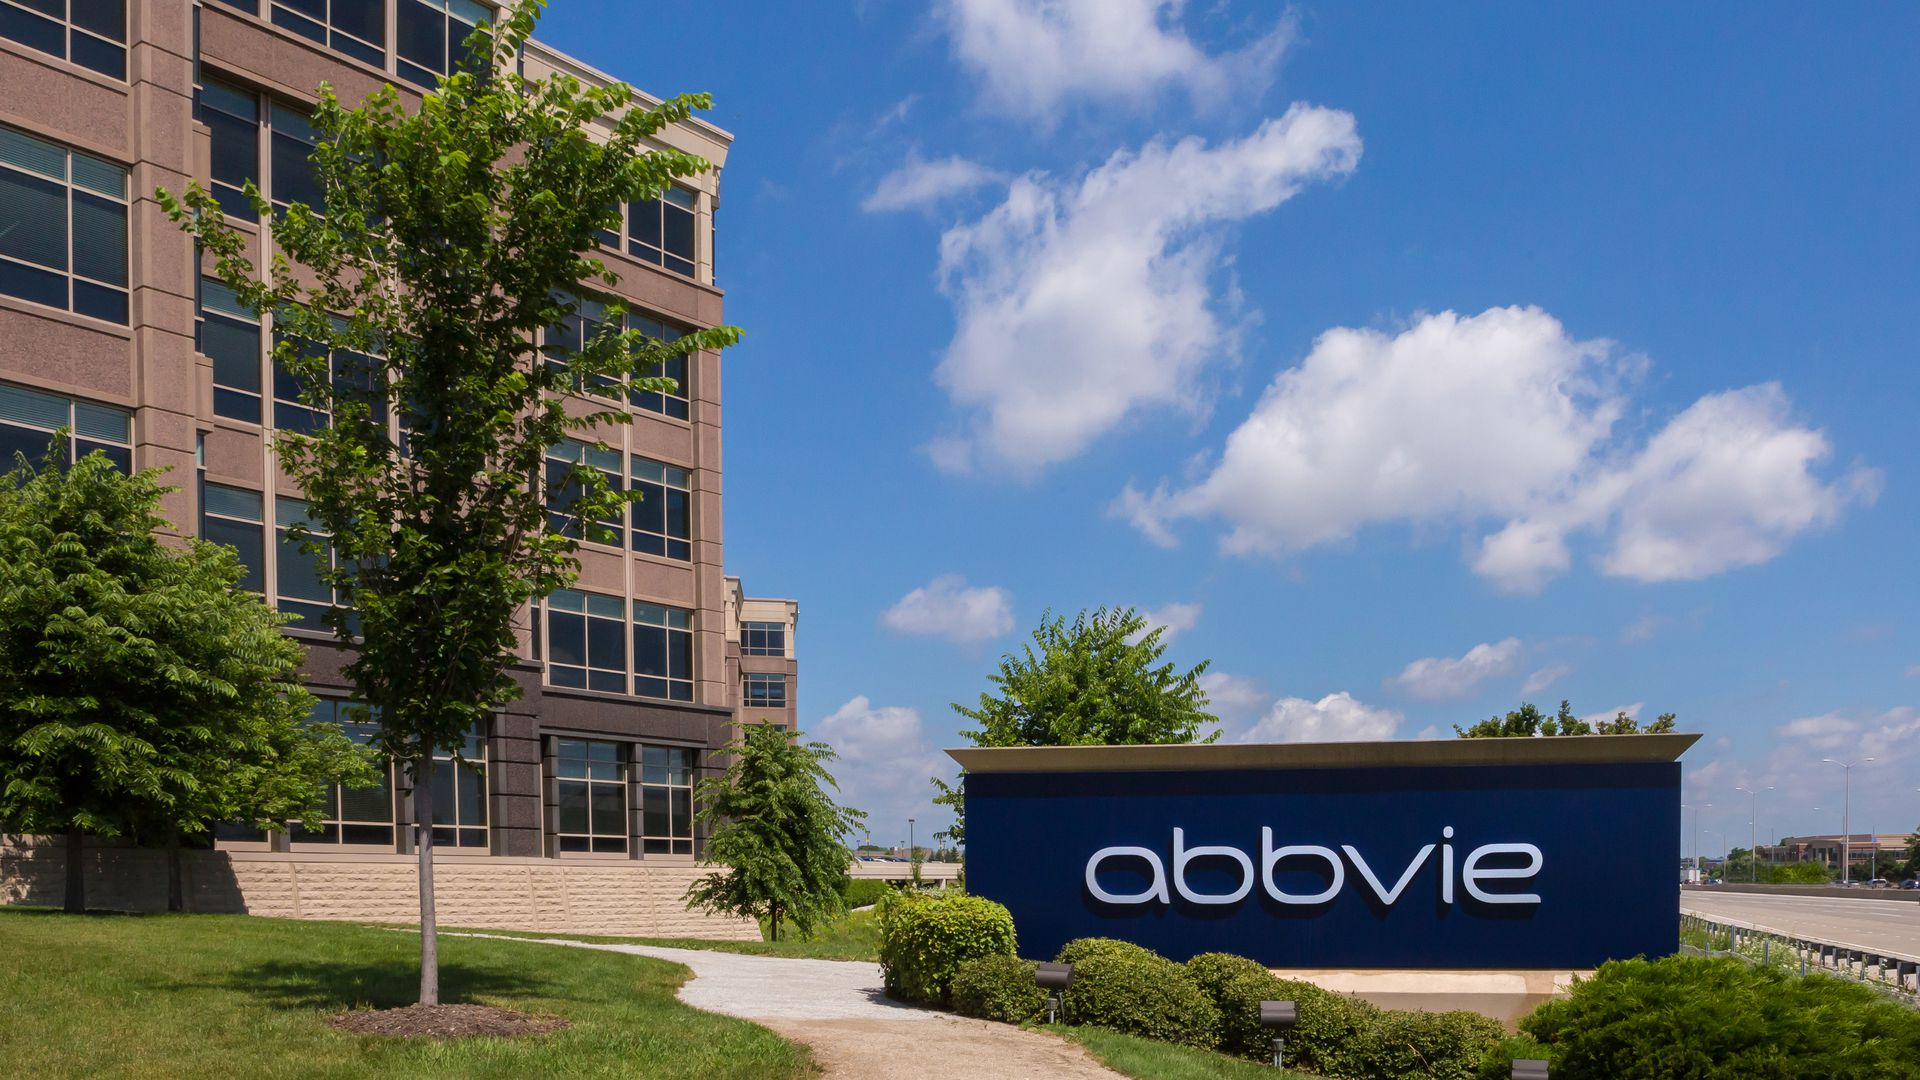 AbbVie headquarters in Illinois.